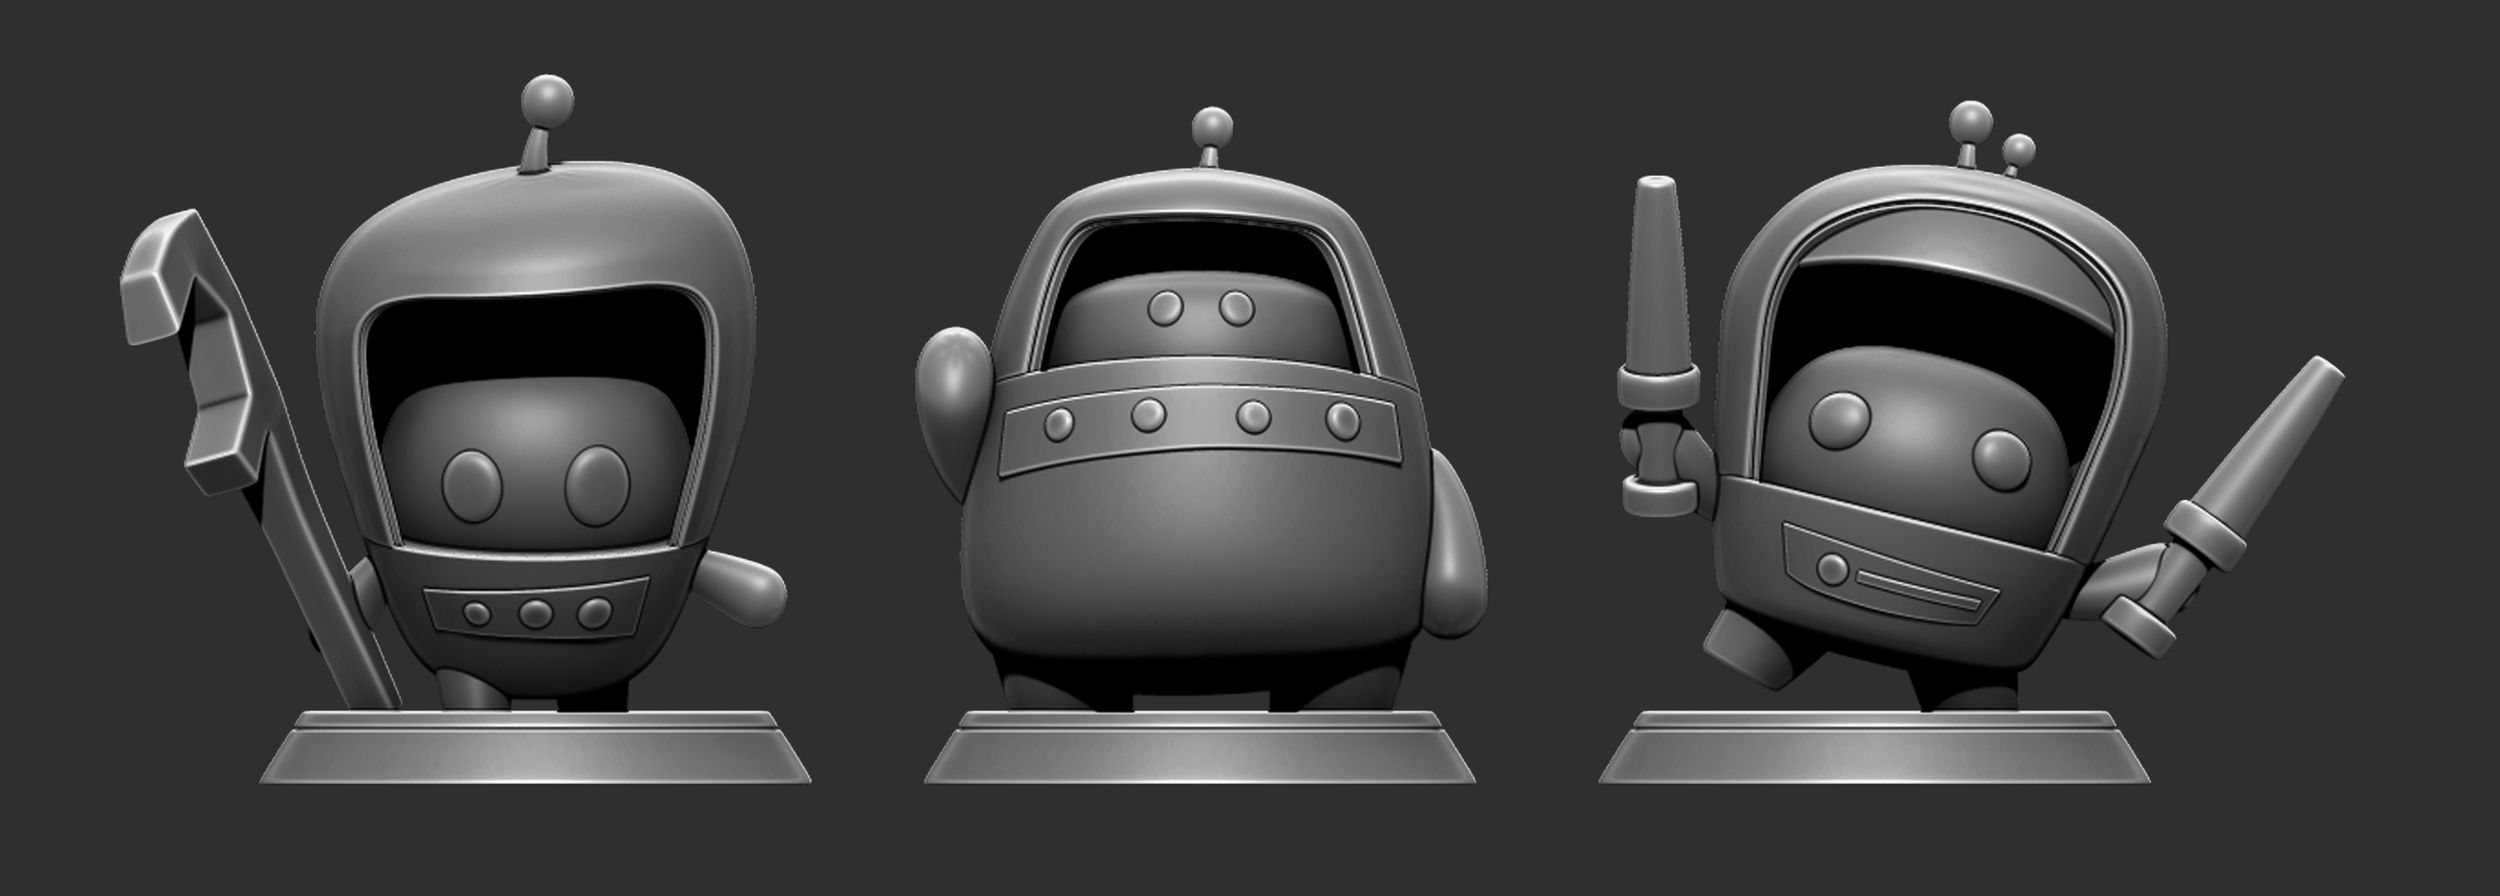 Final Models made in Maya and Zbrush